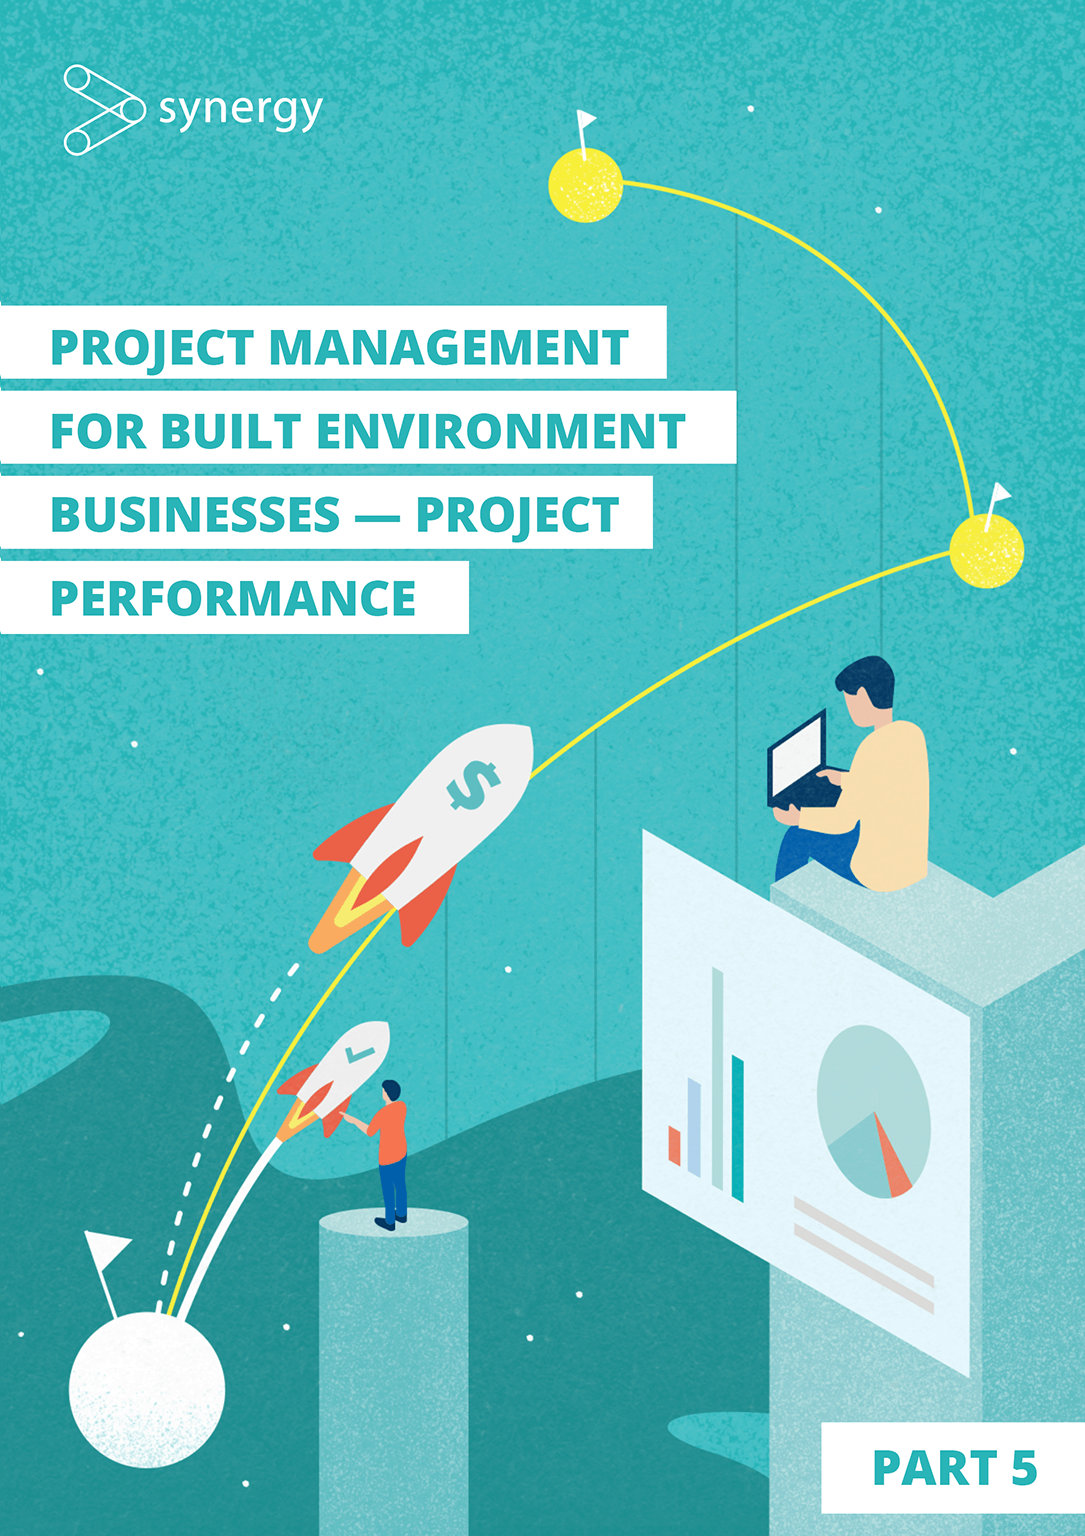 project management part 5 total synergy